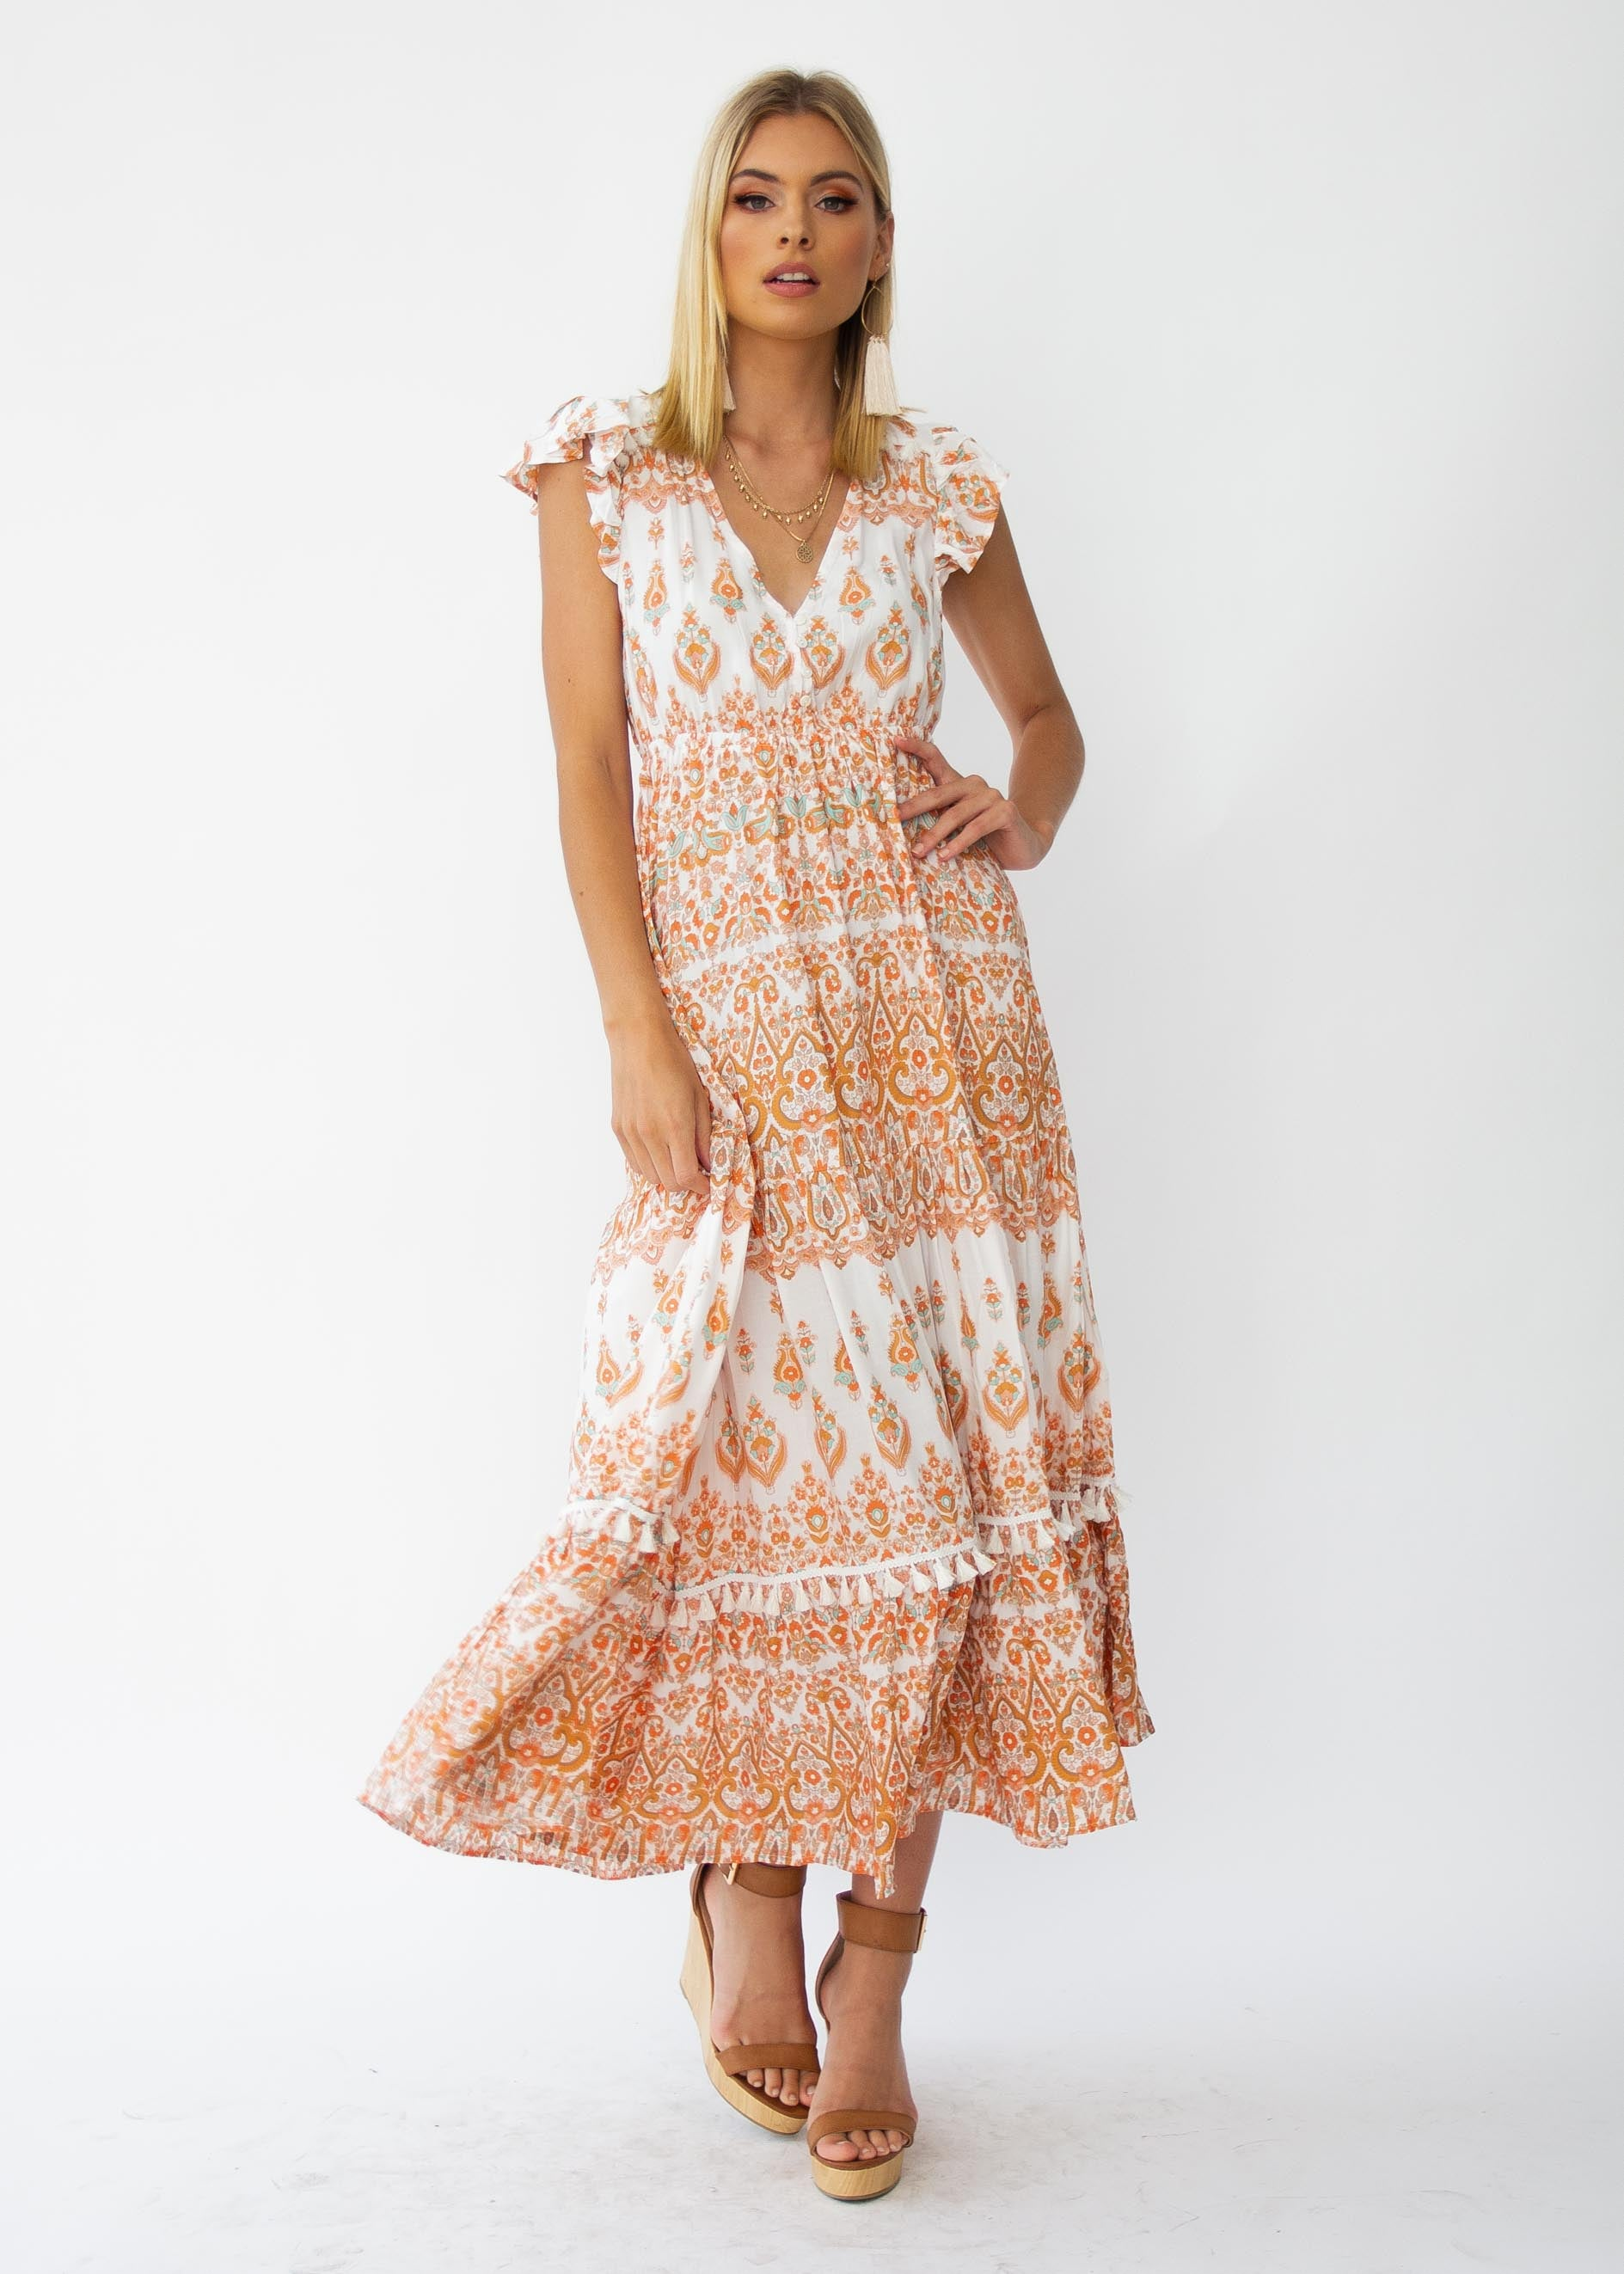 Hewitt Maxi Dress - Holly